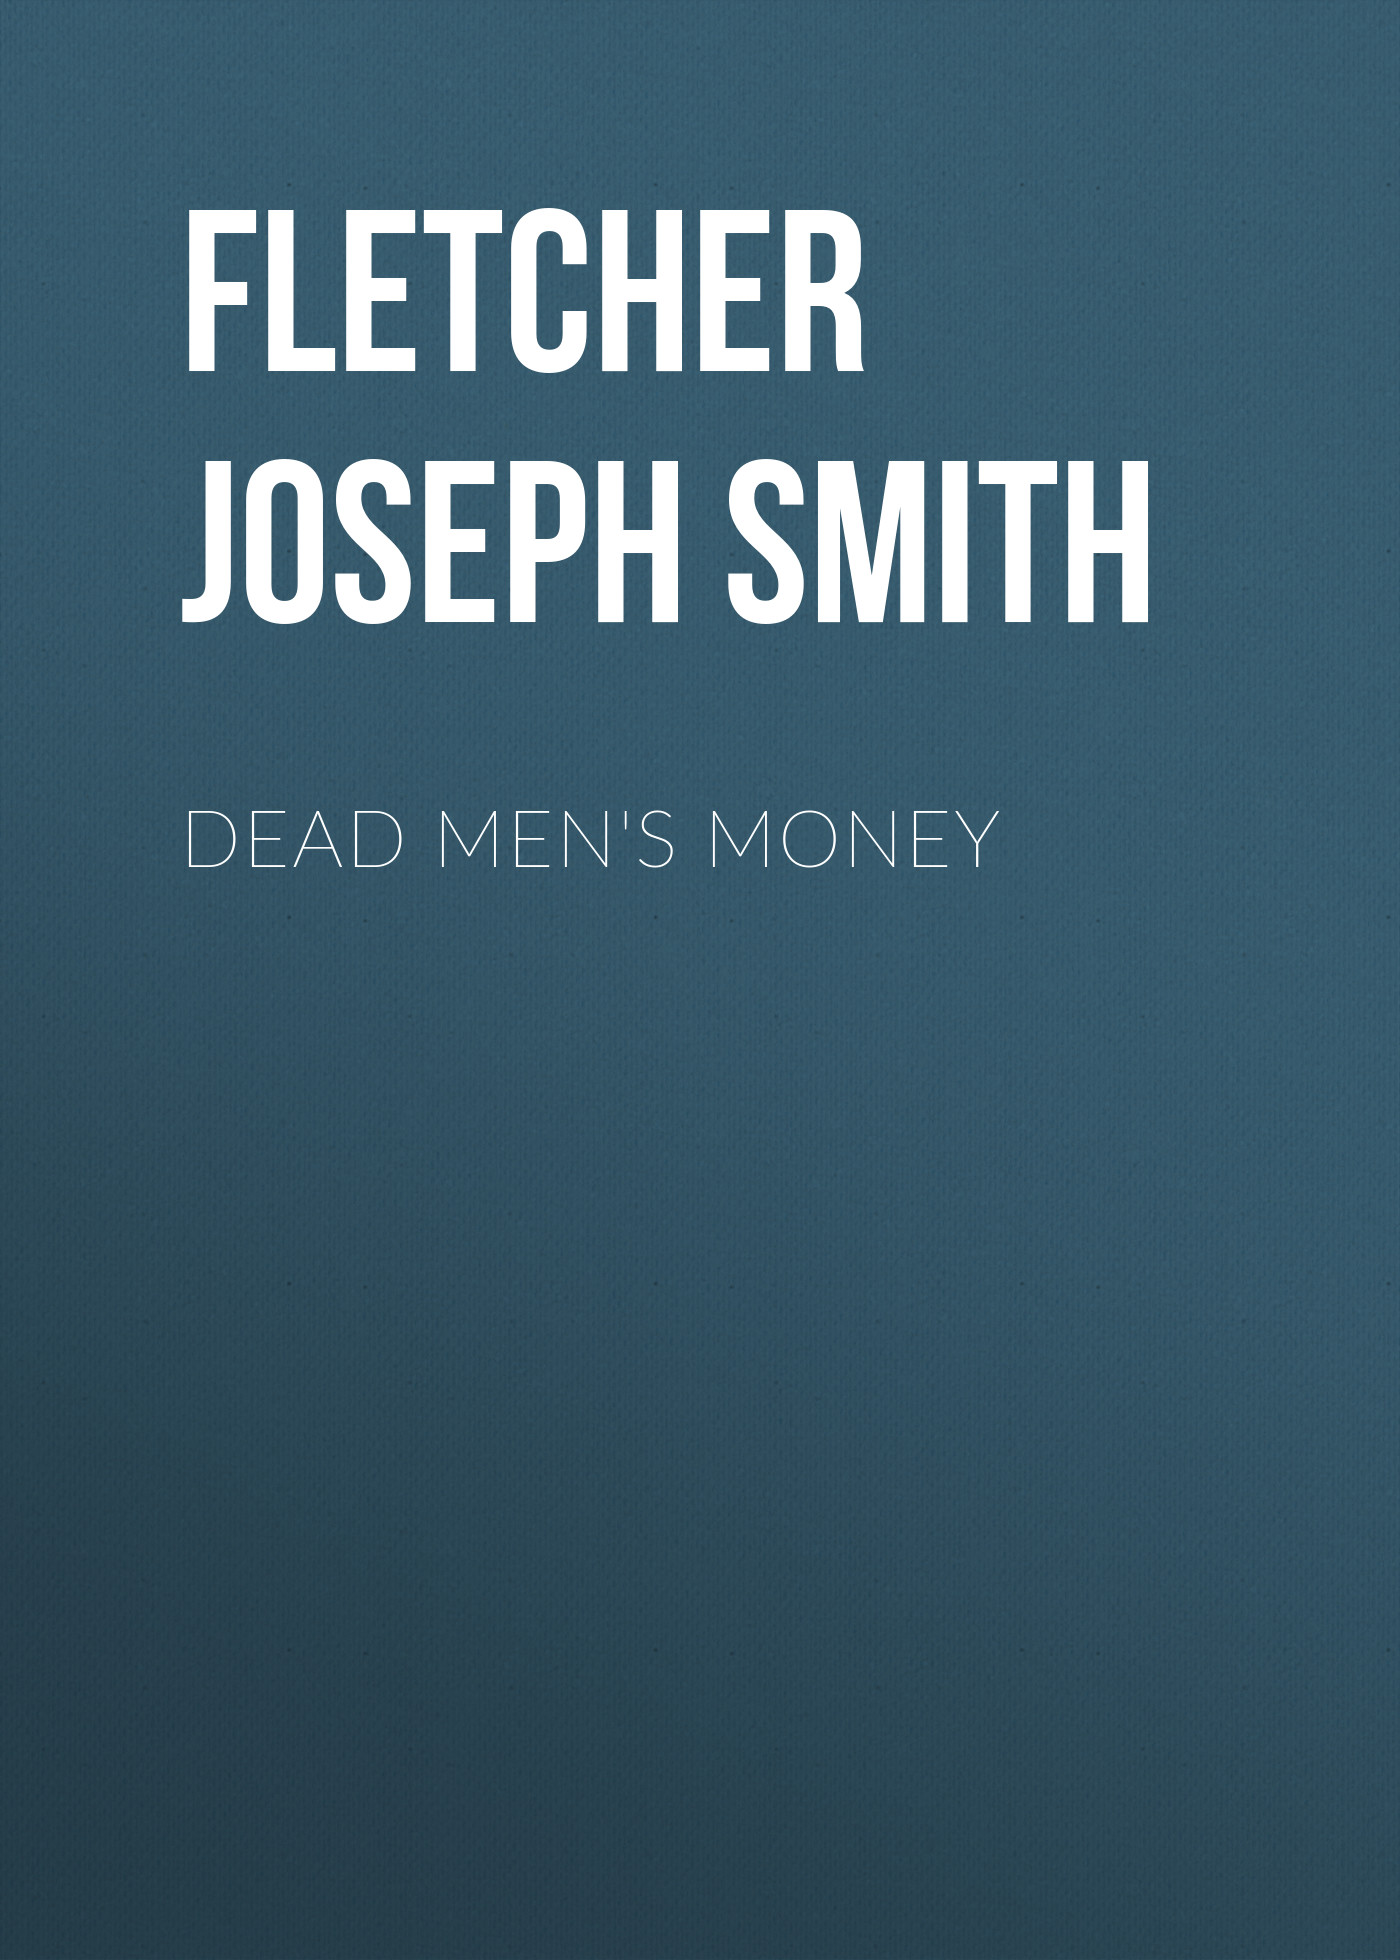 Fletcher Joseph Smith Dead Men's Money